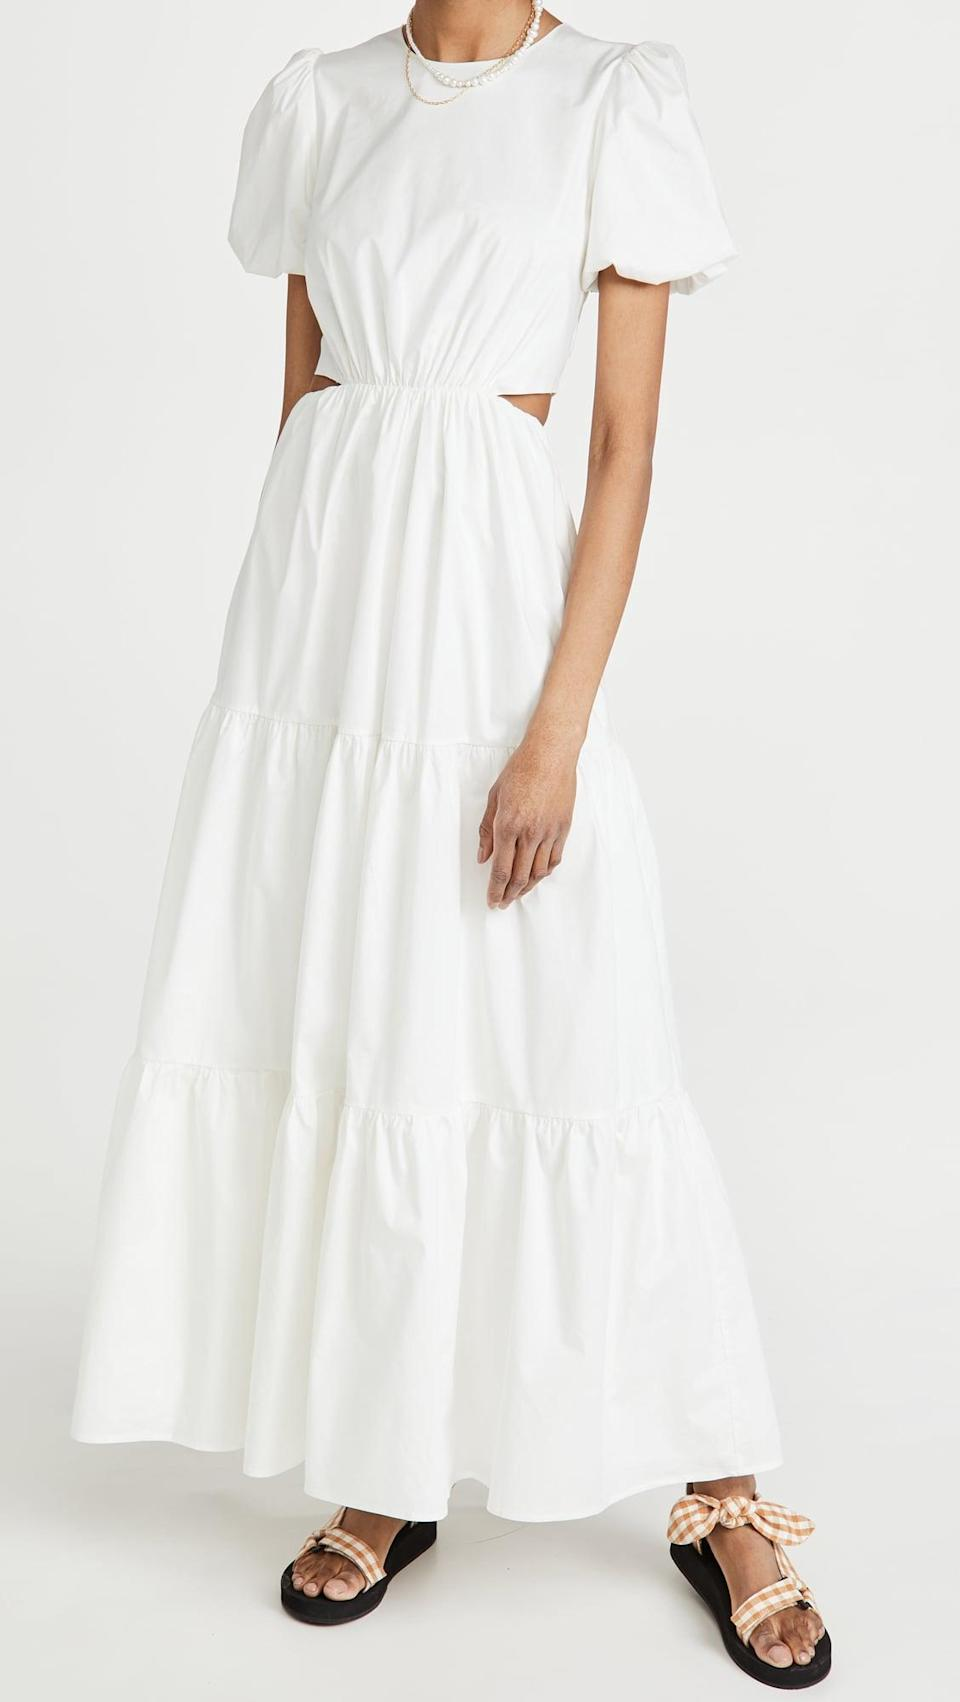 <p>The practical Cancer prefers to lounge at home, but when they do venture outside, it's usually in a classic fit. The <span>WAYF Plaza Cut Out Tiered Maxi Dress</span> ($148) can be dressed up or down and pairs well with Cancer's many moods.</p>